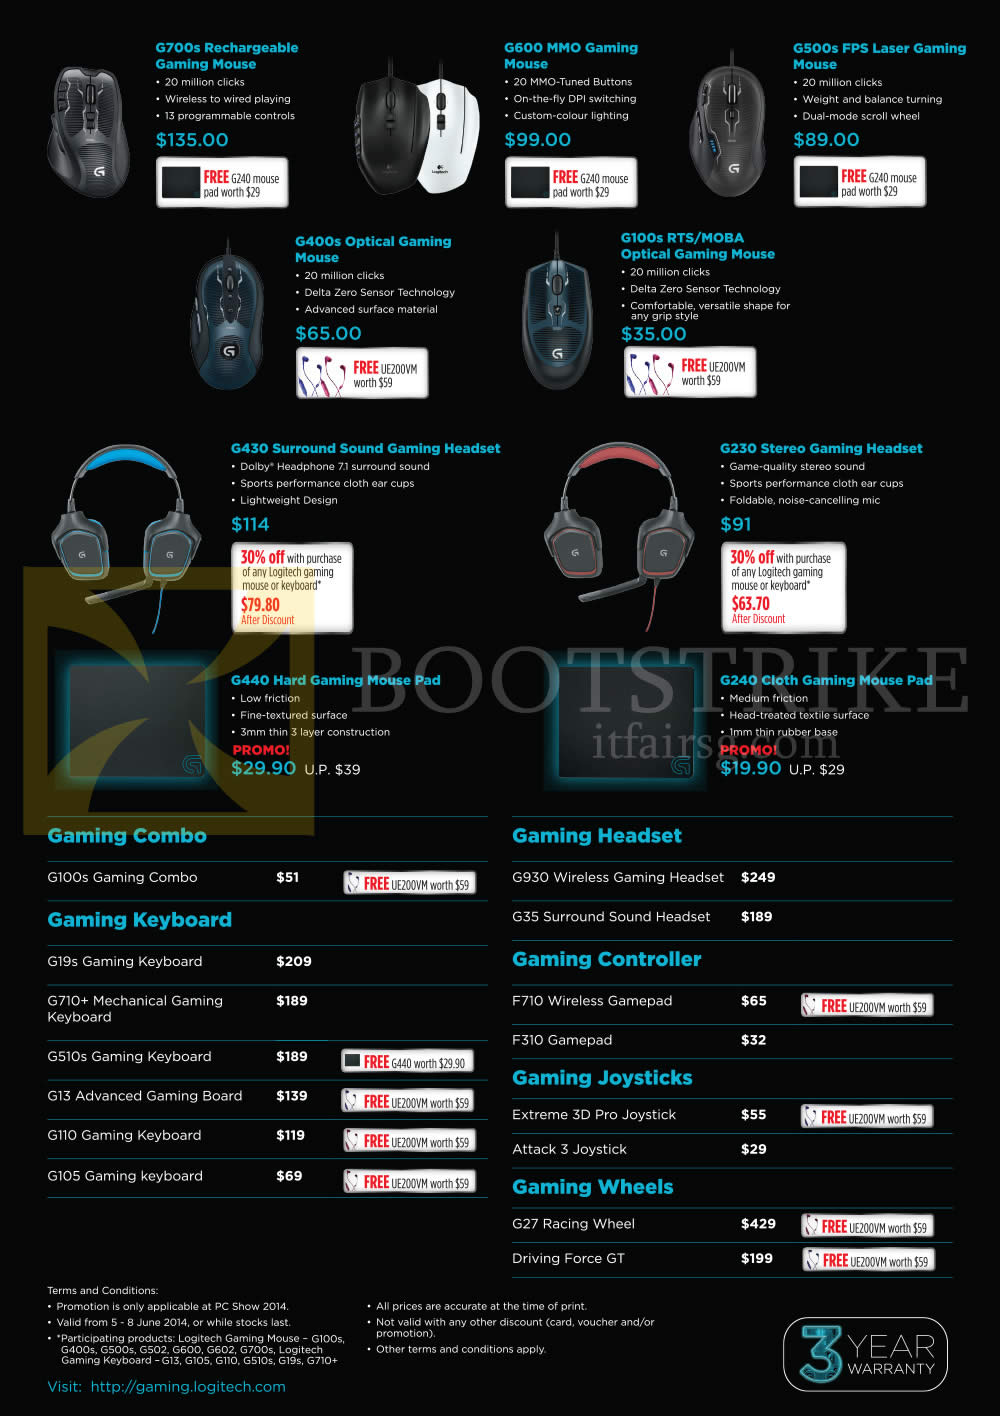 PC SHOW 2014 price list image brochure of Logitech Gaming Mouse, Headset, Mousepad, Keyboard, G700s, G600, G500s, G400s, G100s, G430, G230, G440, G240